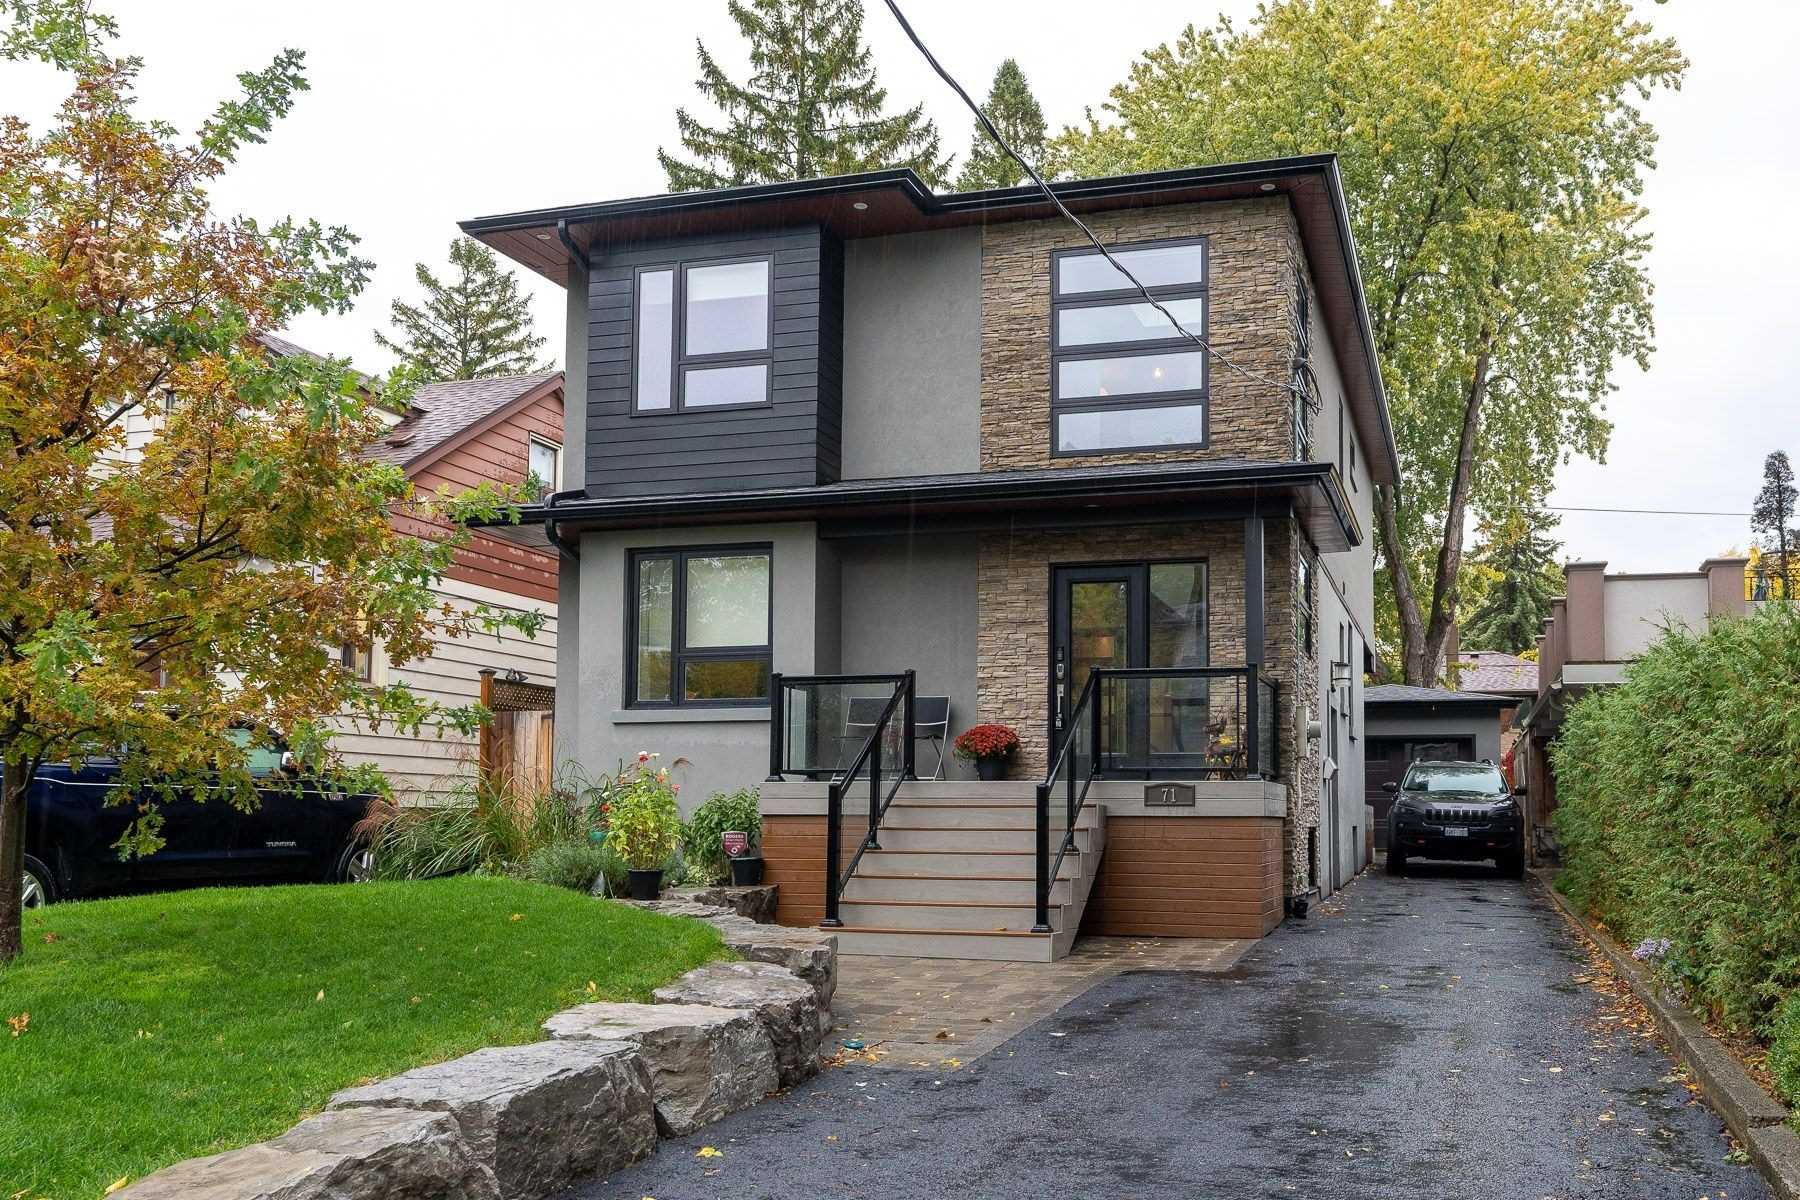 Main Photo: 71 Dorset Road in Toronto: Cliffcrest House (2-Storey) for sale (Toronto E08)  : MLS®# E4956494